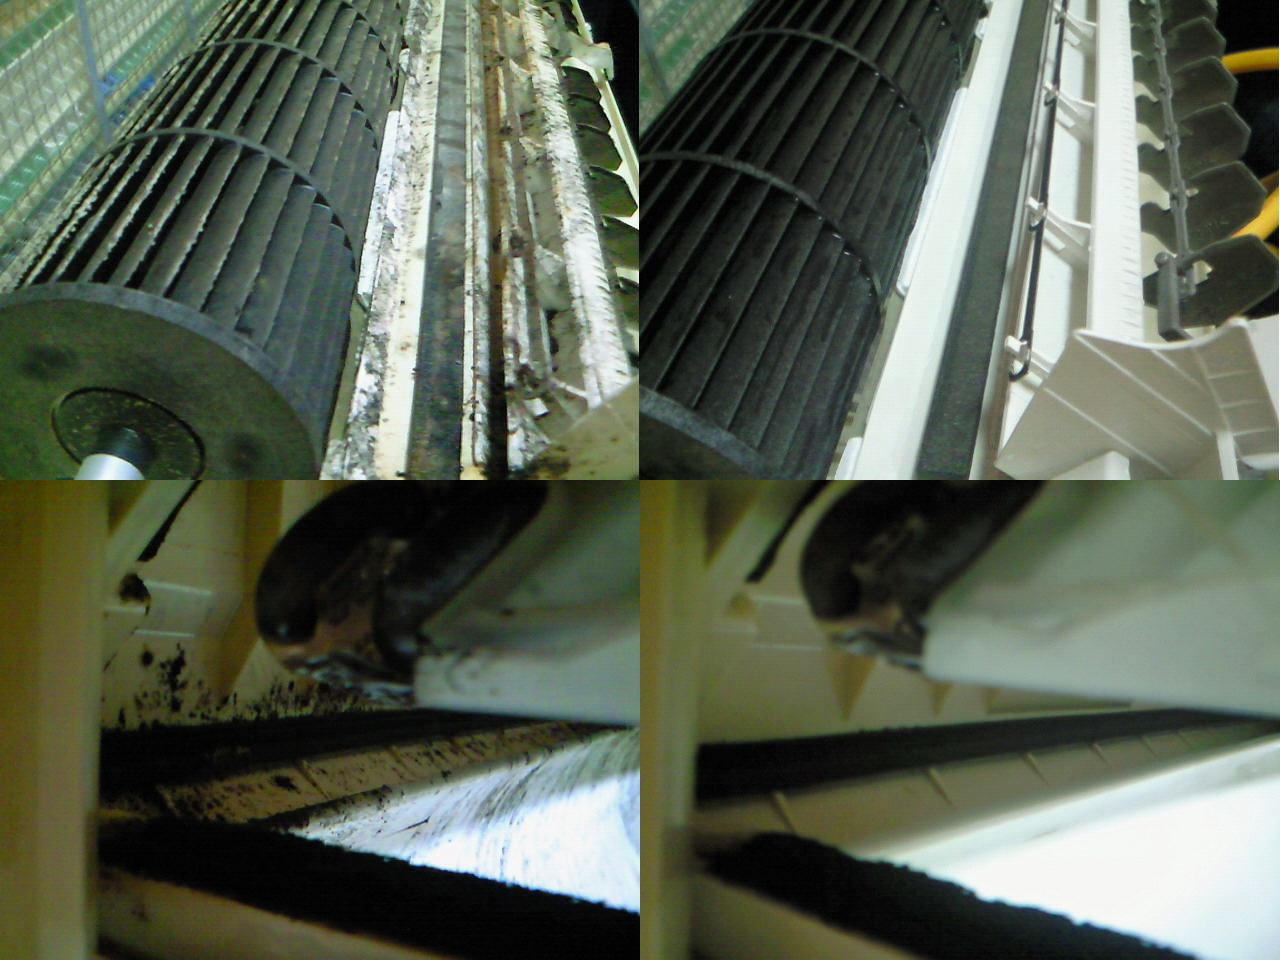 http://ajras.net/images/120720-aircon1.jpg